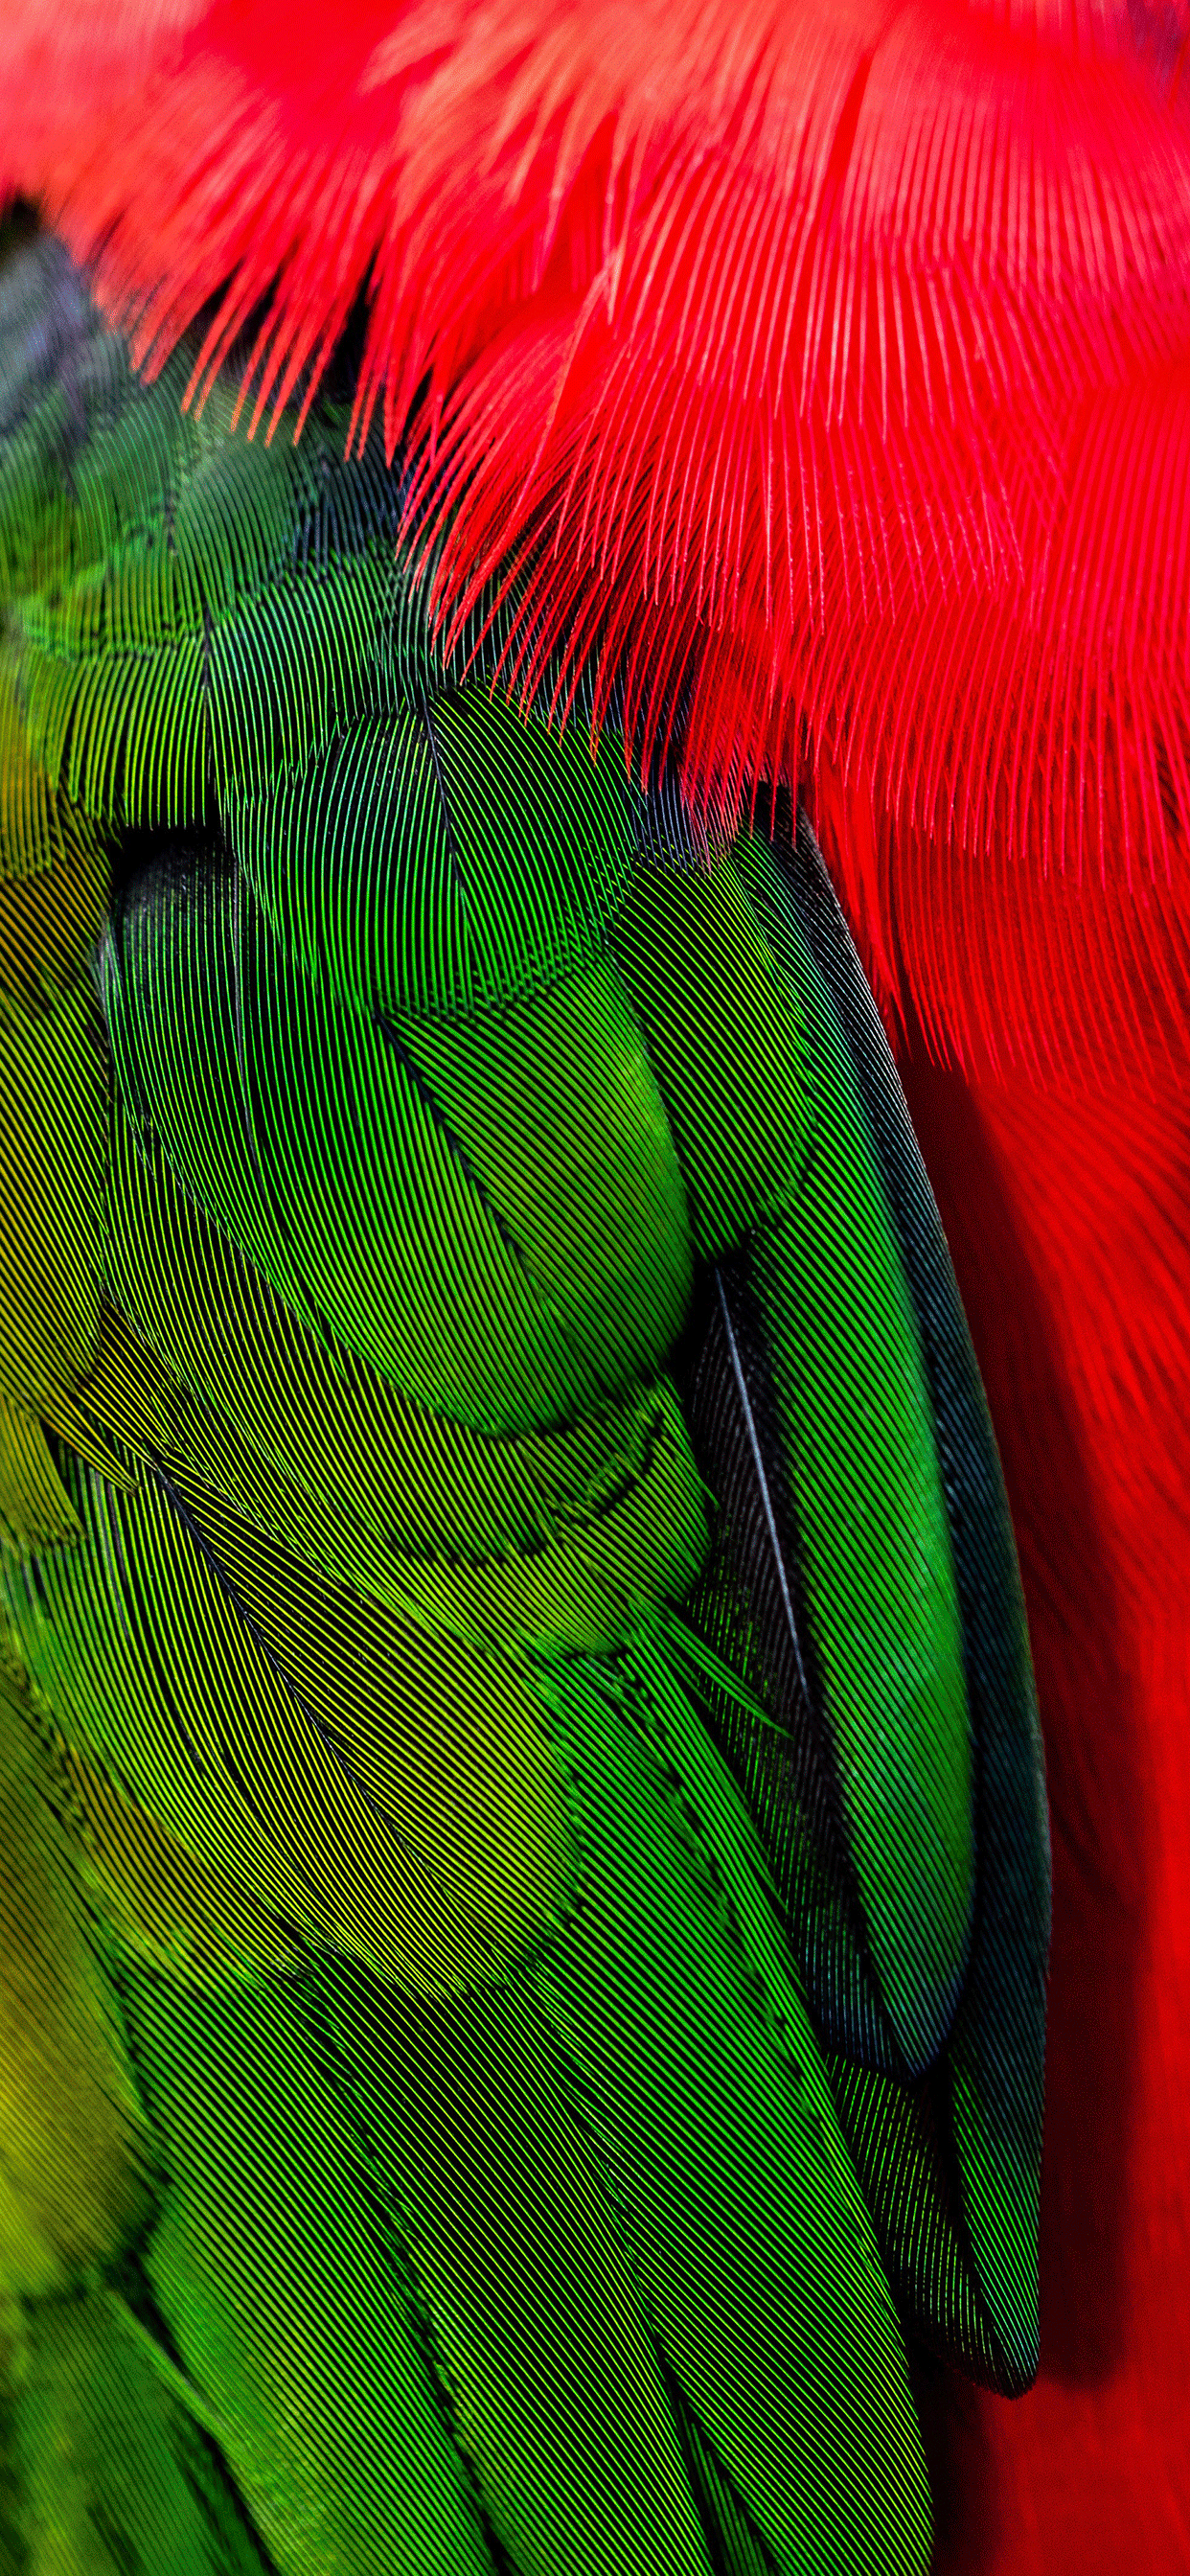 iPhone wallpaper feathers green red Feathers